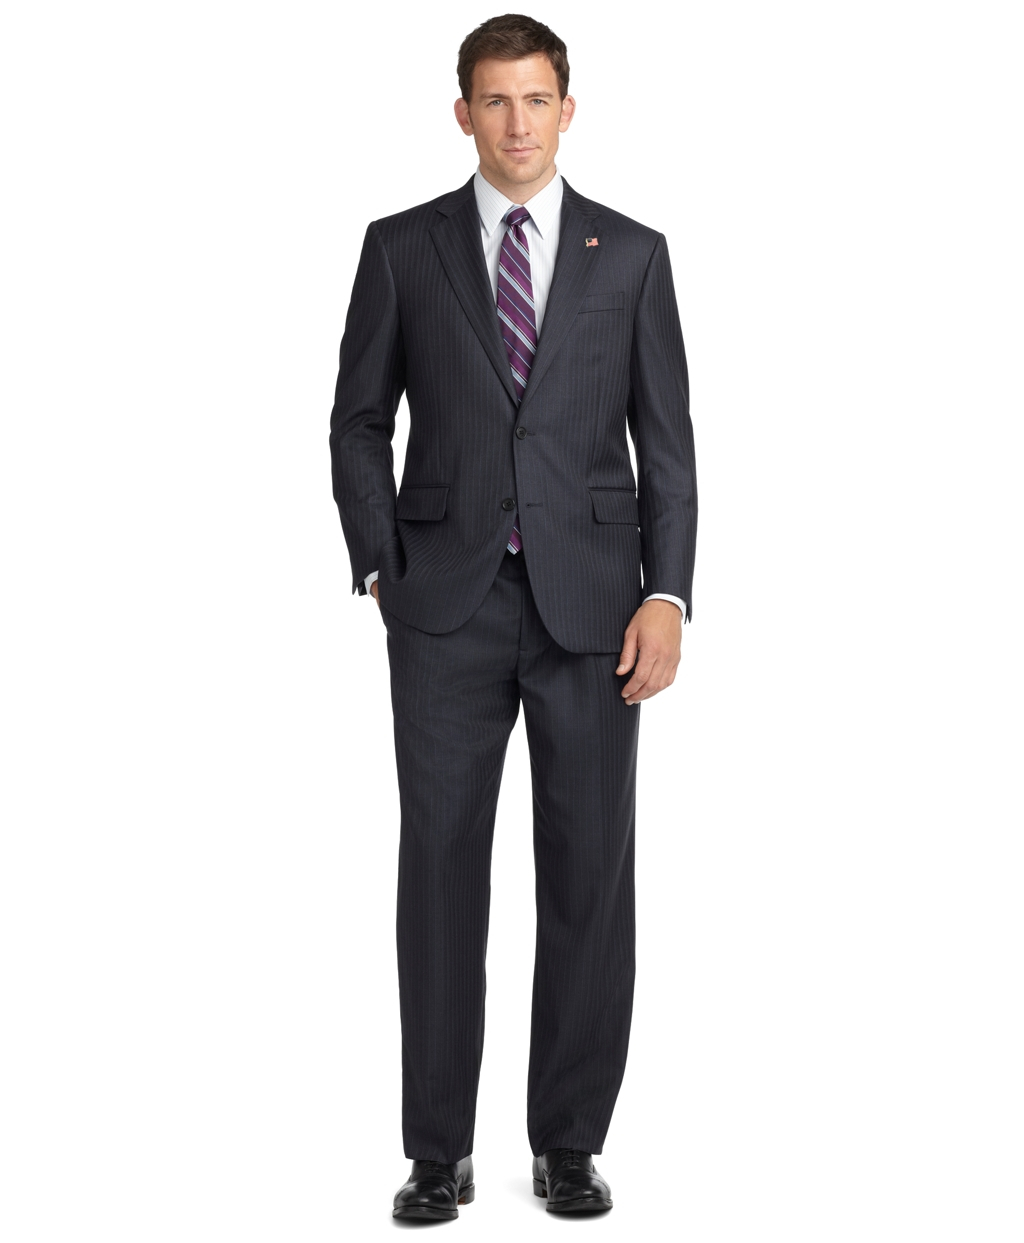 Brooks Brothers Suit Best Of Brooks Brothers - YouTube